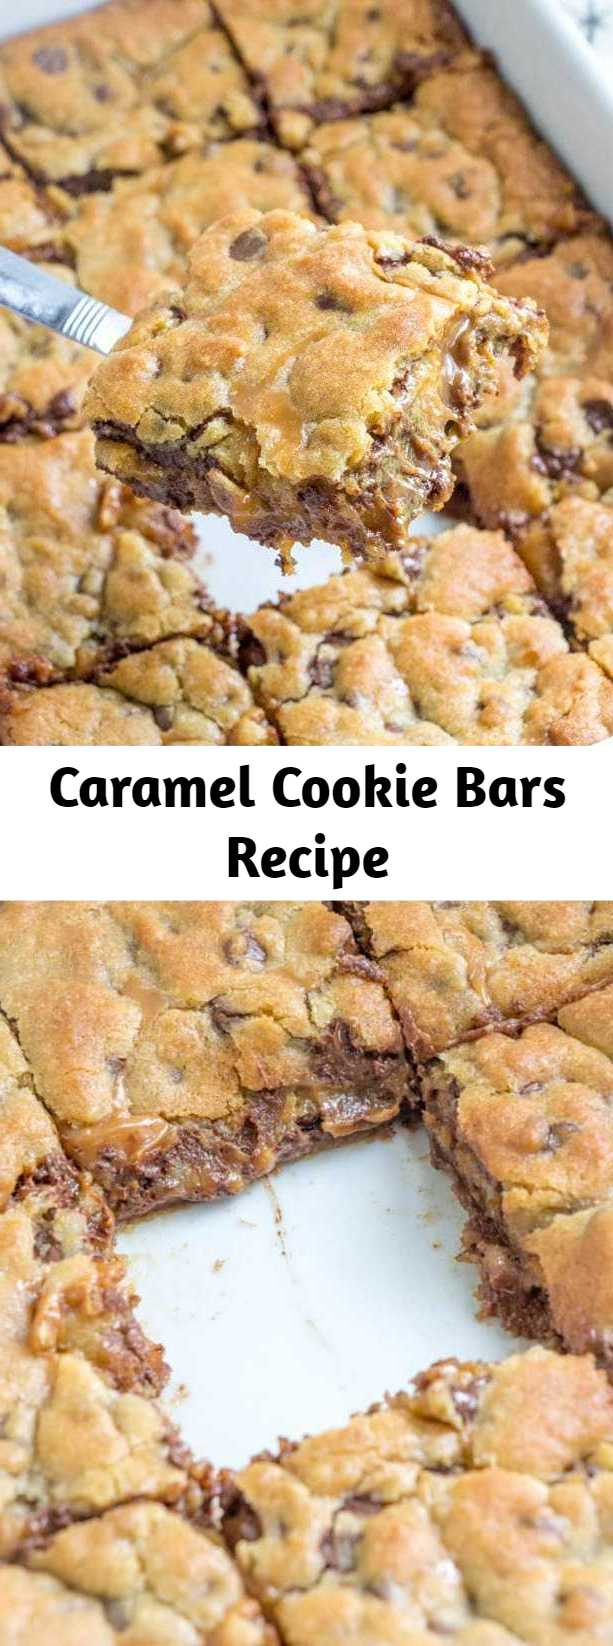 Caramel Cookie Bars Recipe - Delicious Caramel Cookie Bars with an amazing layer of gooey caramel stuffed in better the layers with a hint of peanut butter. These cookie bars are EPIC and you'll never make them anyway again!